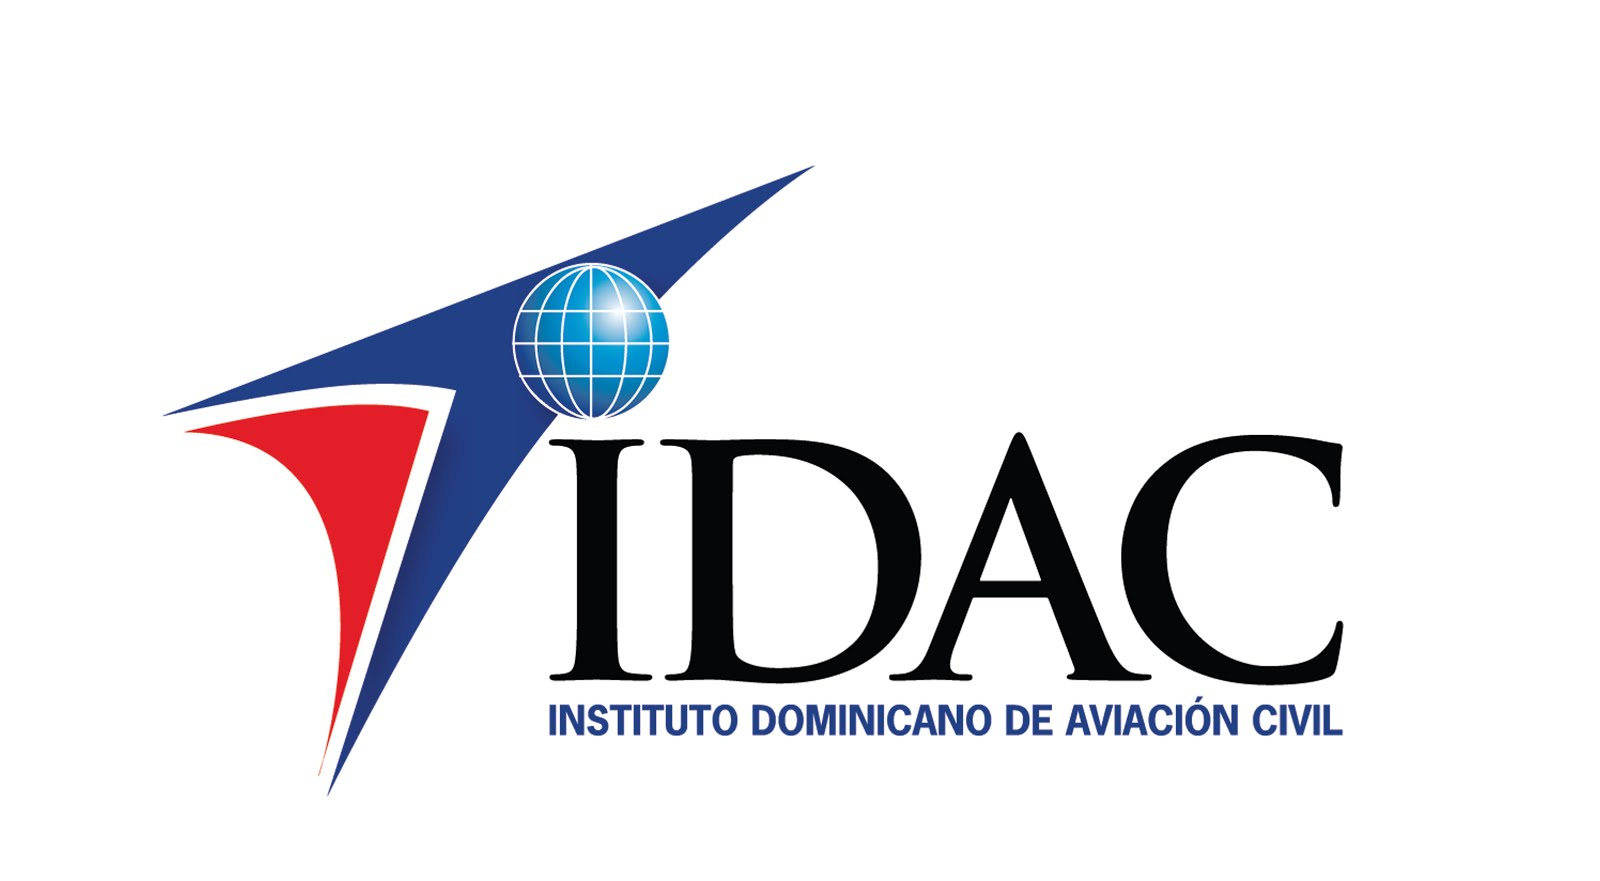 INSTITUTO DOMINICANOL DE AVIACIÓN CIVIL